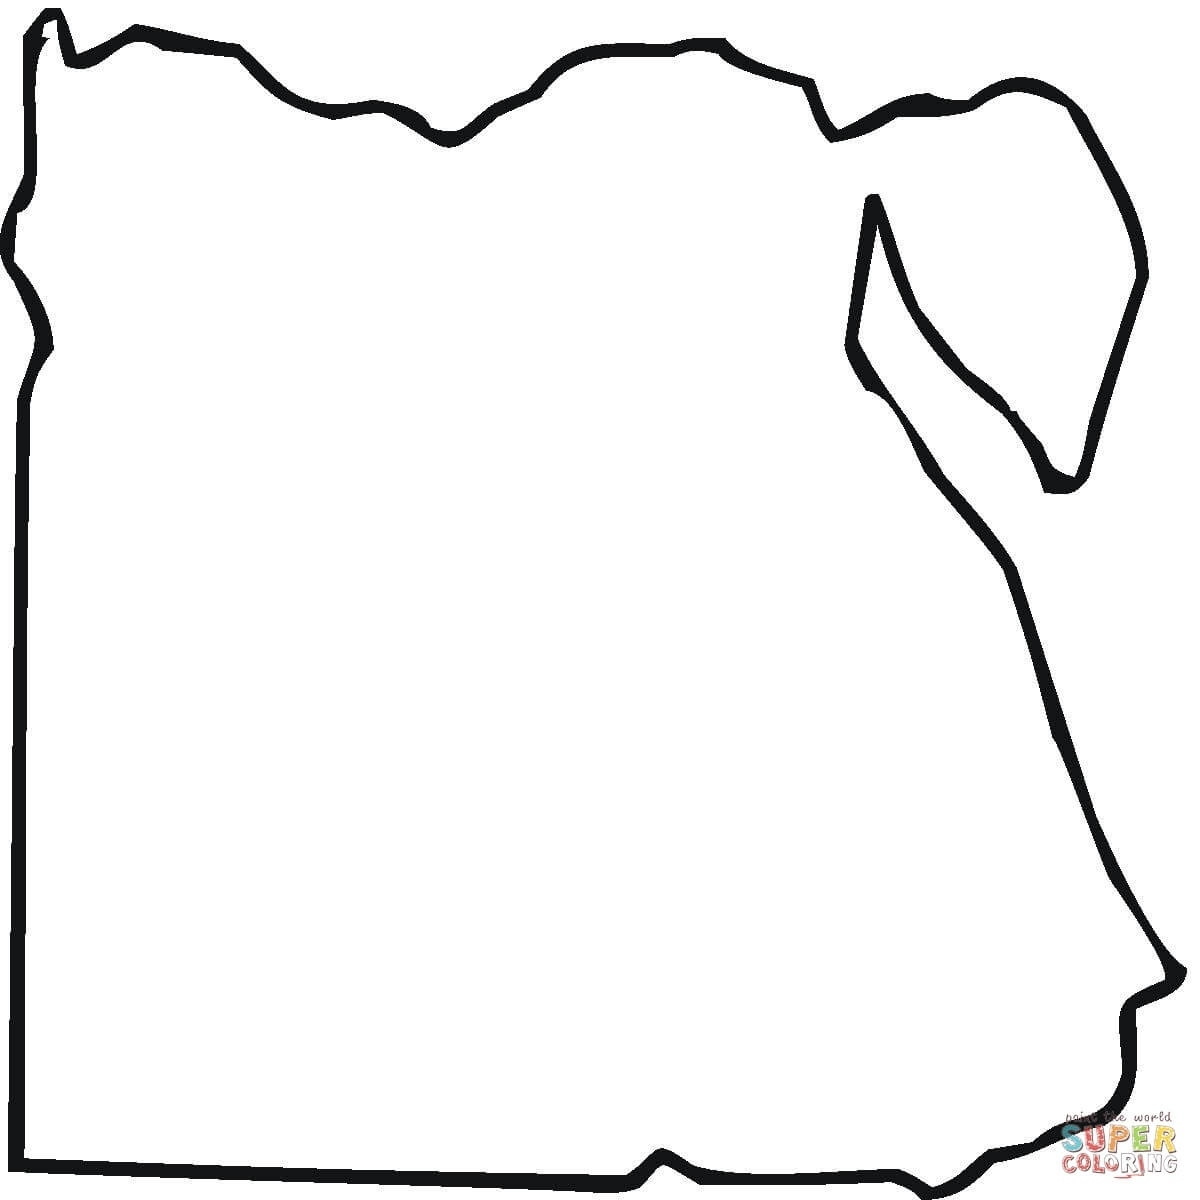 Egypt Map Outline Coloring Page   Free Printable Coloring Pages pertaining to Germany Map Coloring Page